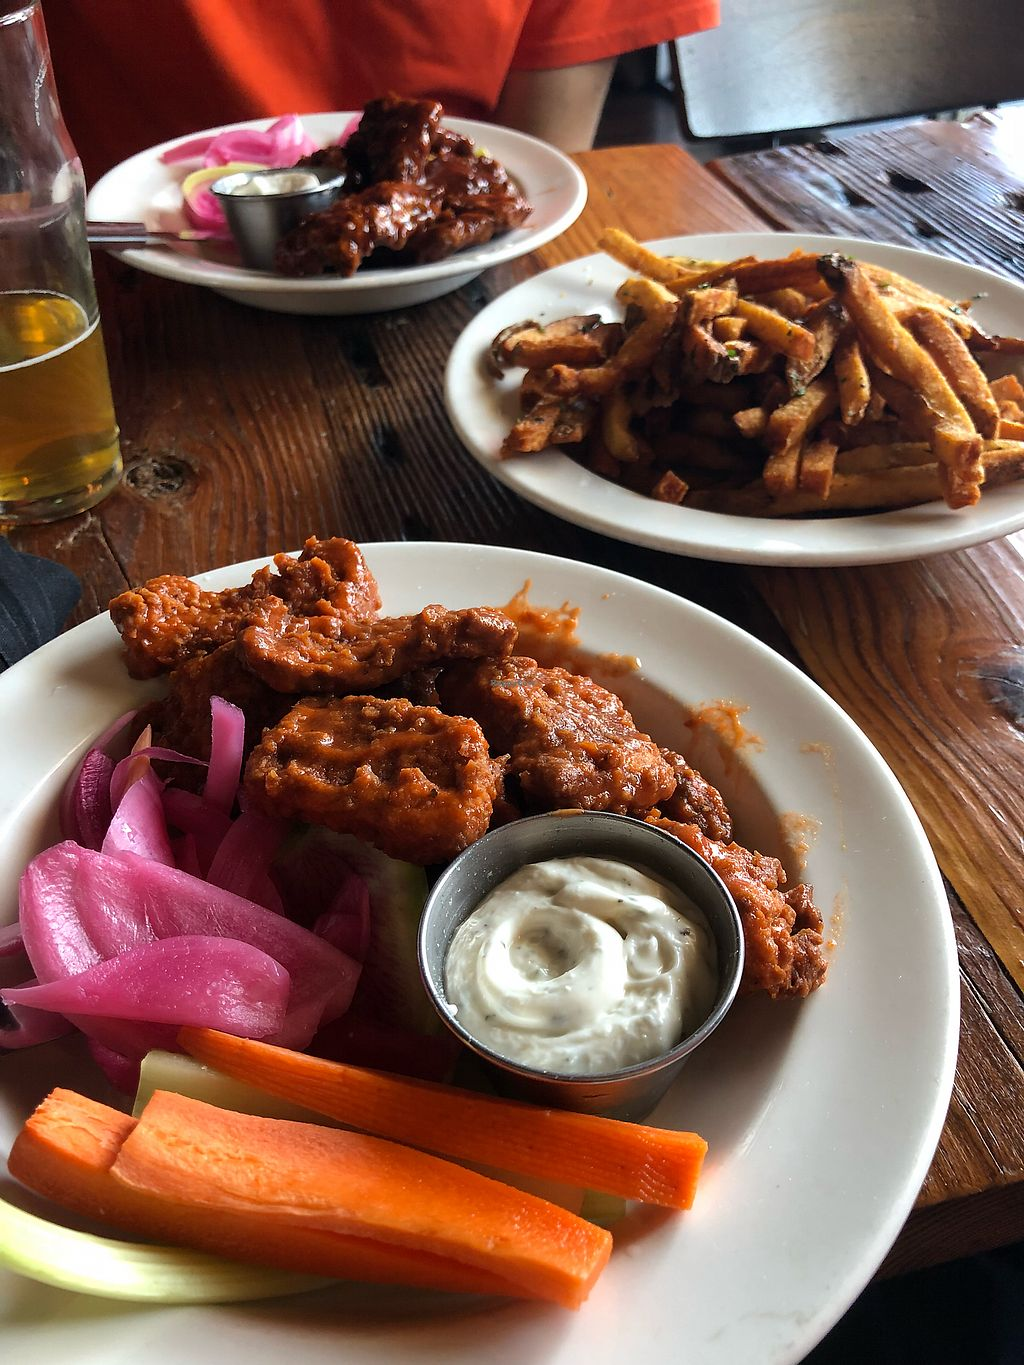 "Photo of Benson Brewery  by <a href=""/members/profile/Jadediana"">Jadediana</a> <br/>Two types of vegan wings with vegan ranch and fries  <br/> May 12, 2018  - <a href='/contact/abuse/image/90199/398845'>Report</a>"